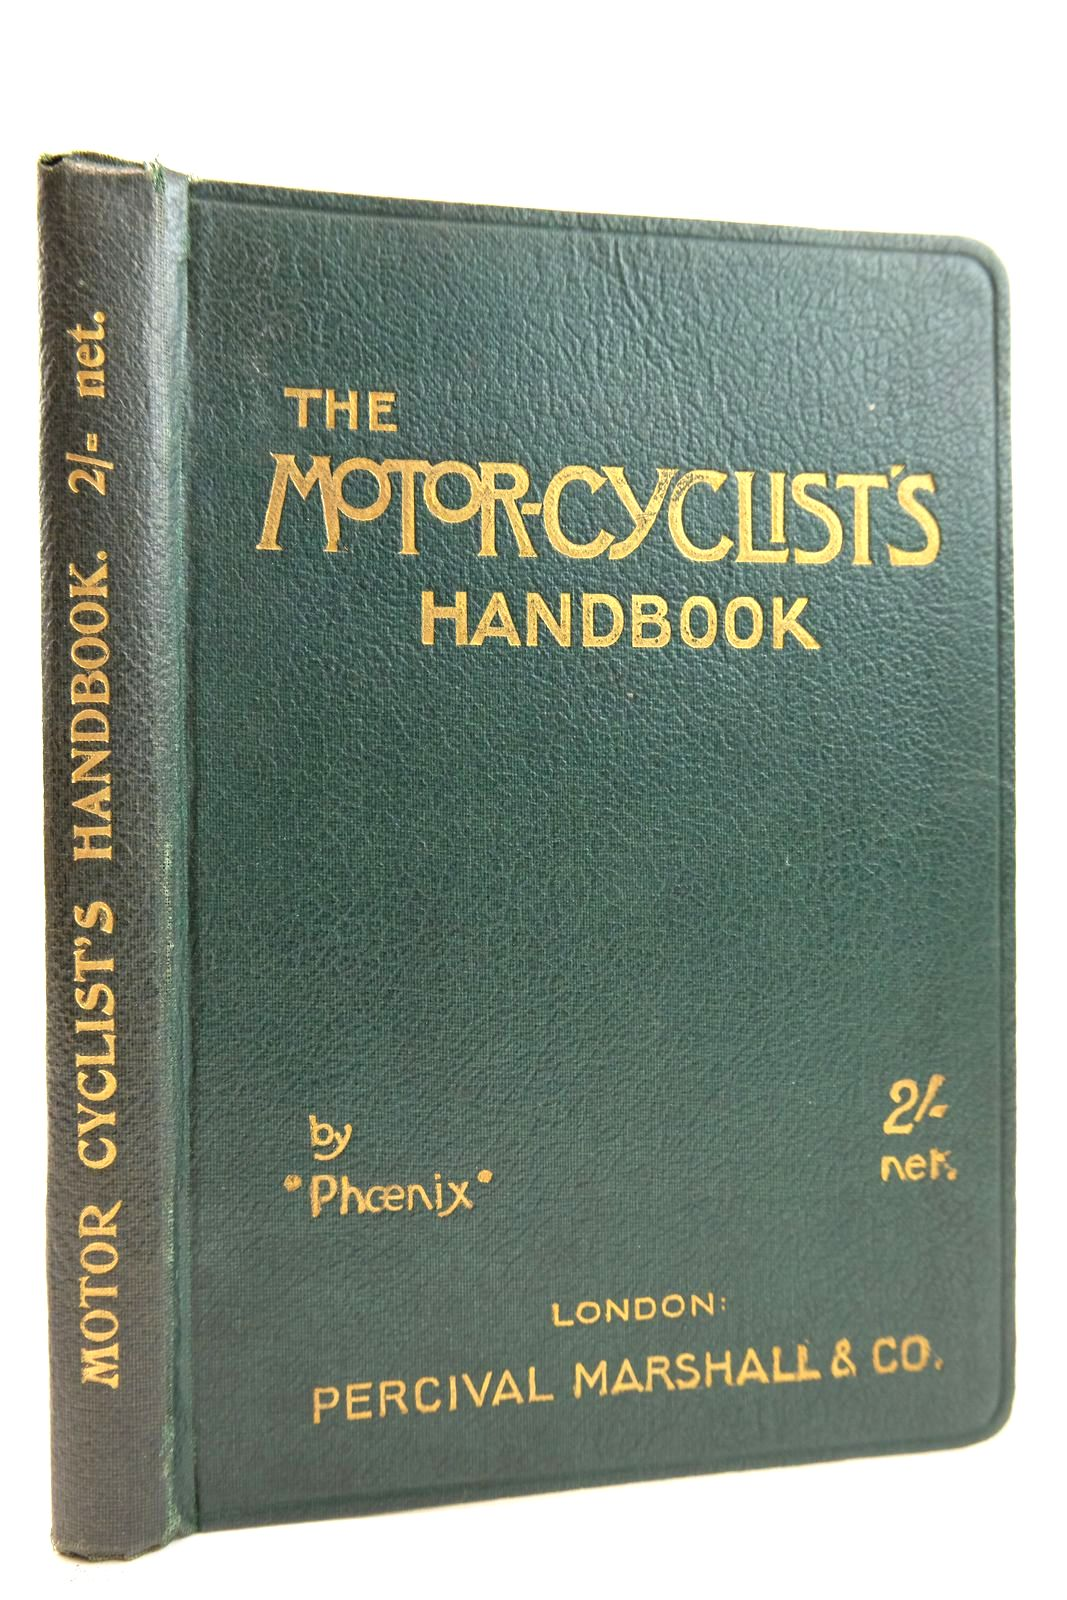 Photo of THE MOTOR CYCLIST'S HANDBOOK written by Lake, Chas. S. Phoenix, published by Percival Marshall And Co (STOCK CODE: 2132367)  for sale by Stella & Rose's Books